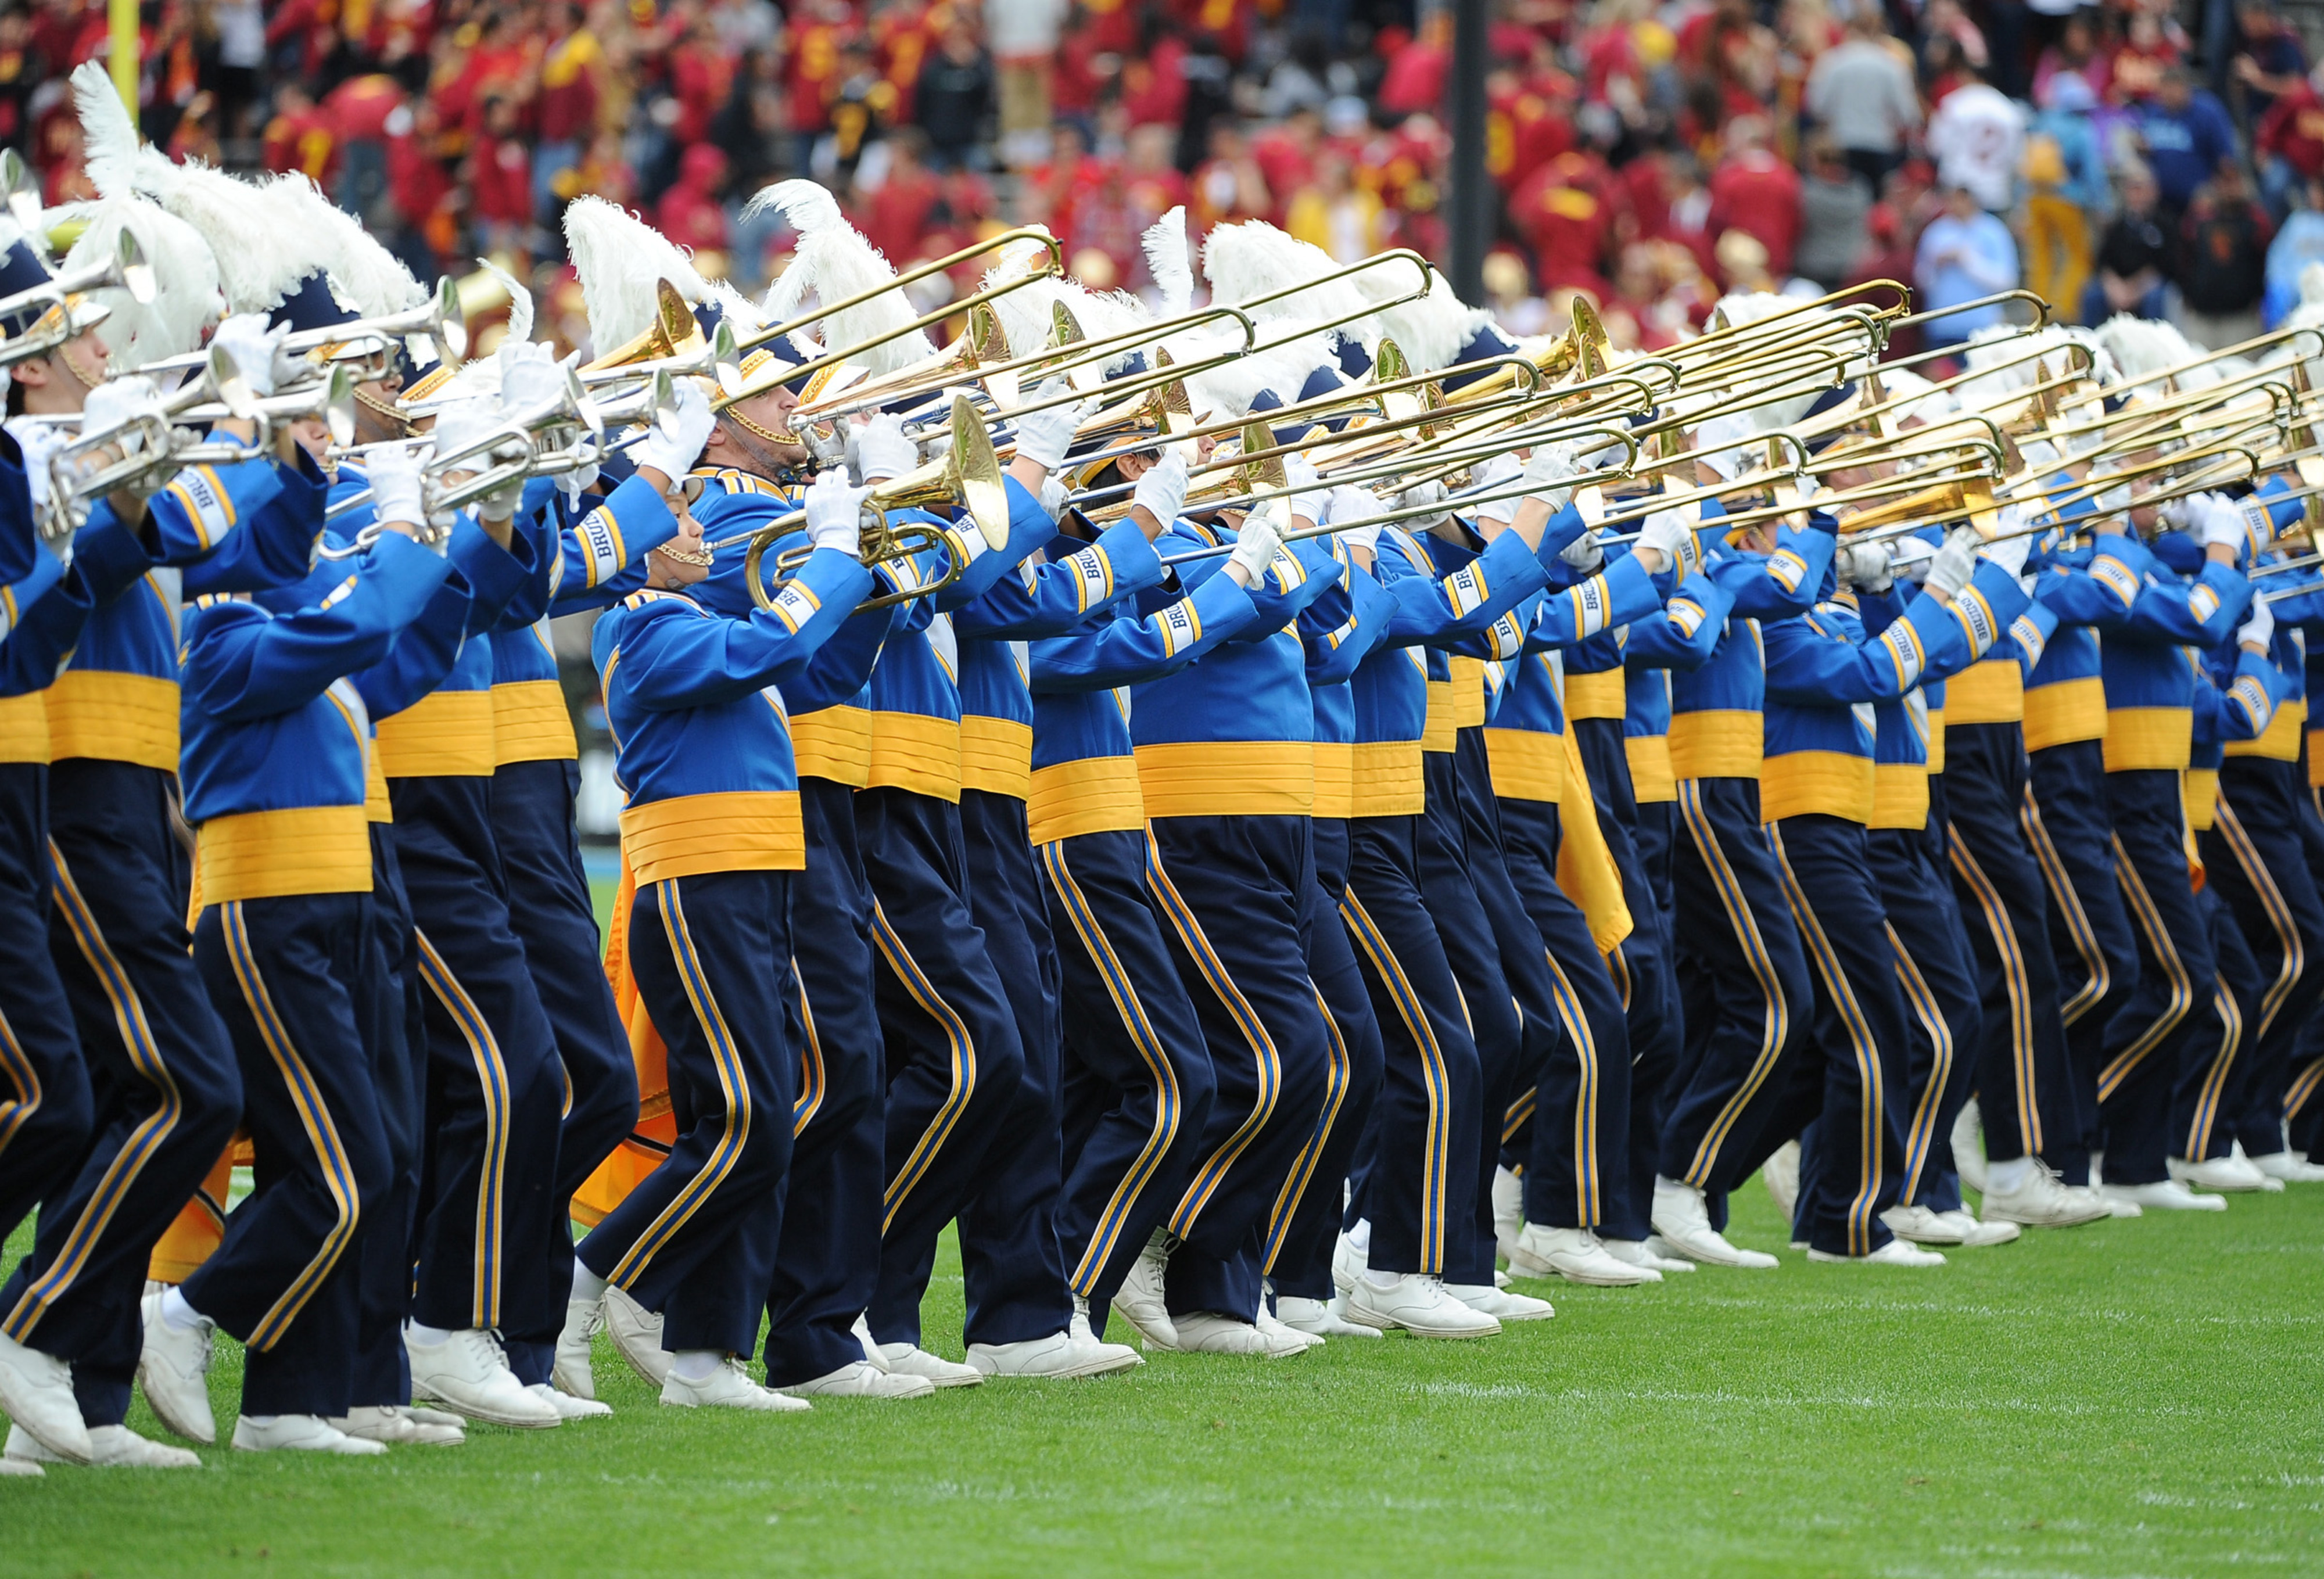 Yes, the best marching band from the West Coast doesn't need some plastic sword planting clown to make awesome music.